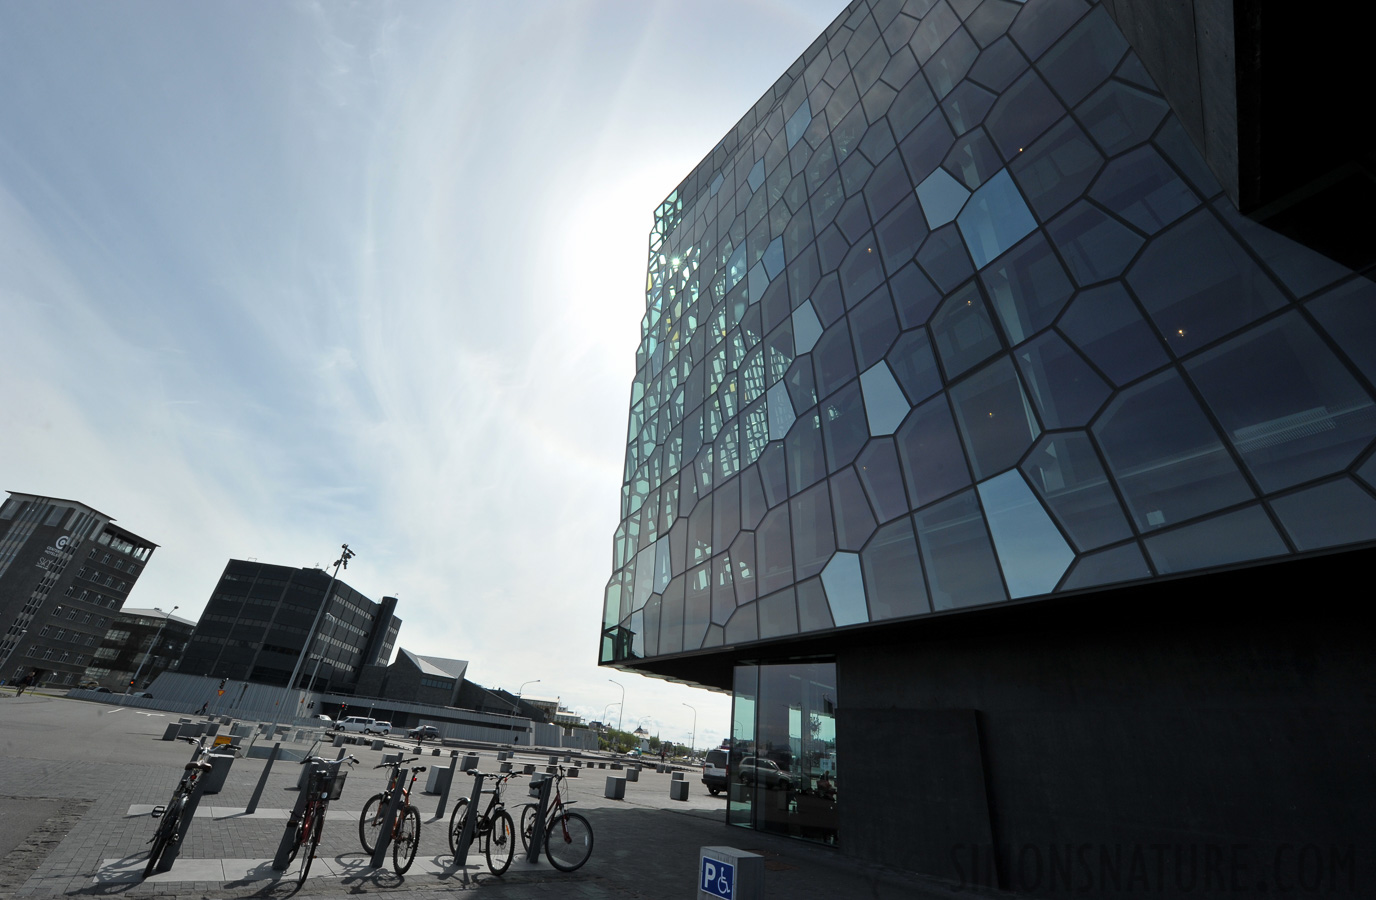 Harpa Concert Hall [14 mm, 1/400 sec at f / 18, ISO 400]